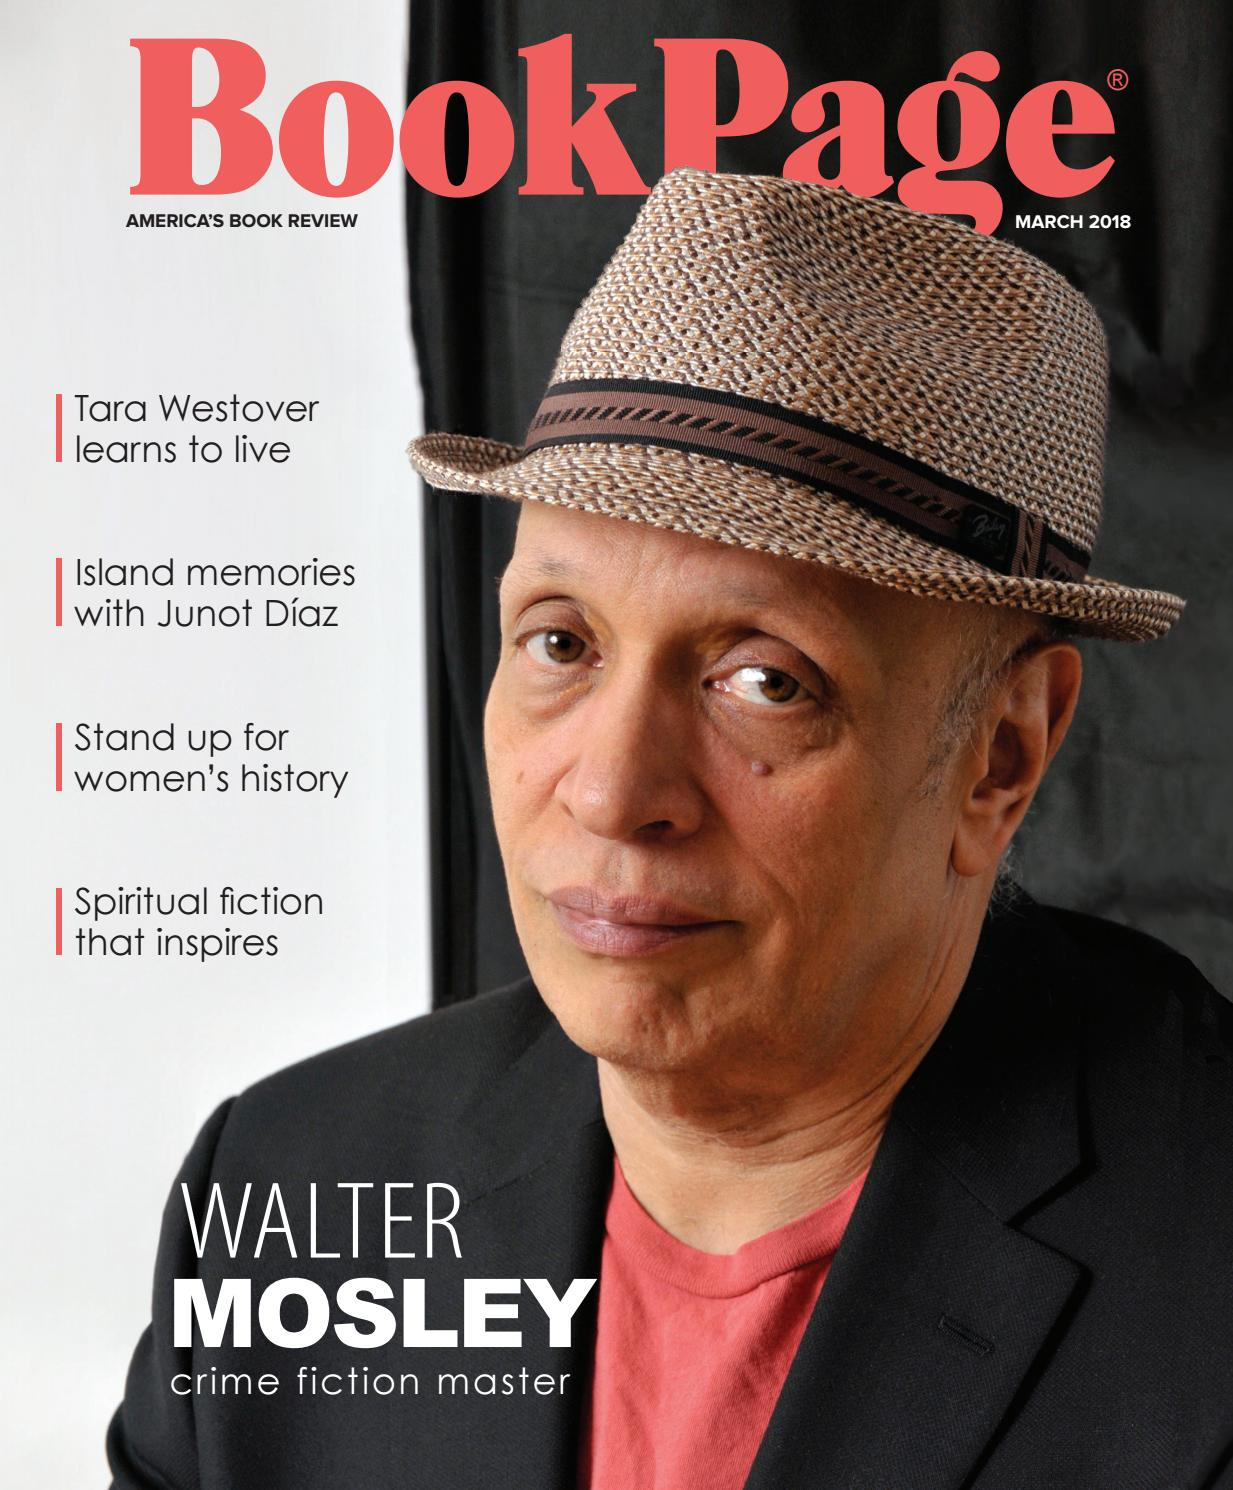 BookPage March 2018 by BookPage - issuu 9a3461f81372